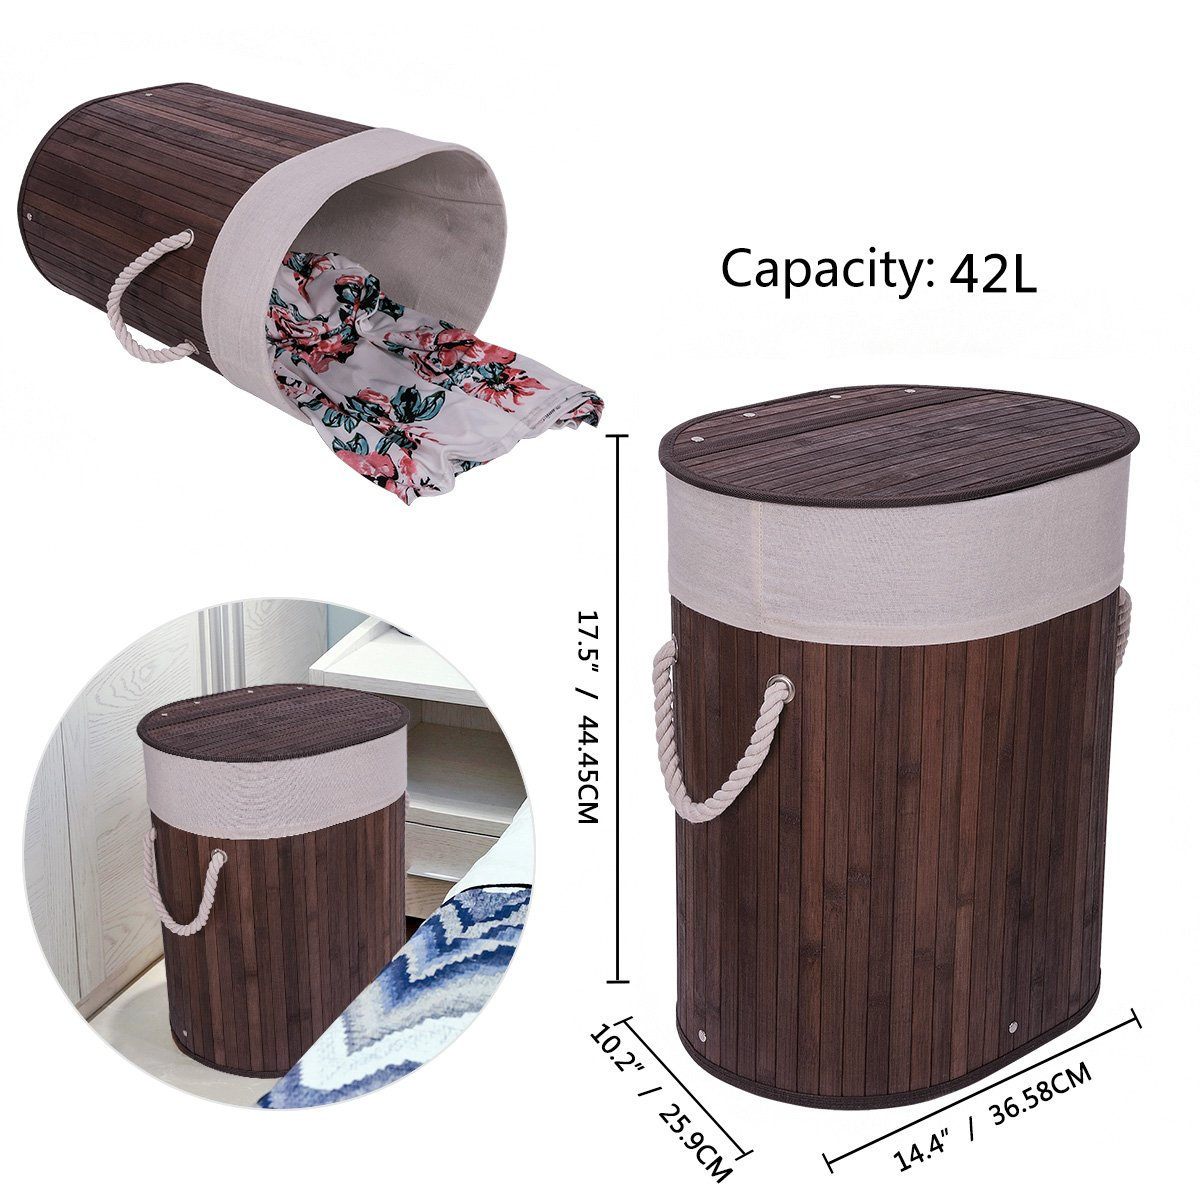 WOWLIVE Bamboo Laundry Basket Lid Handles Removable Liner Folding Dirty Clothes Organizer Foldable Easily Transport Washing Bin (42L,Dark Brown)